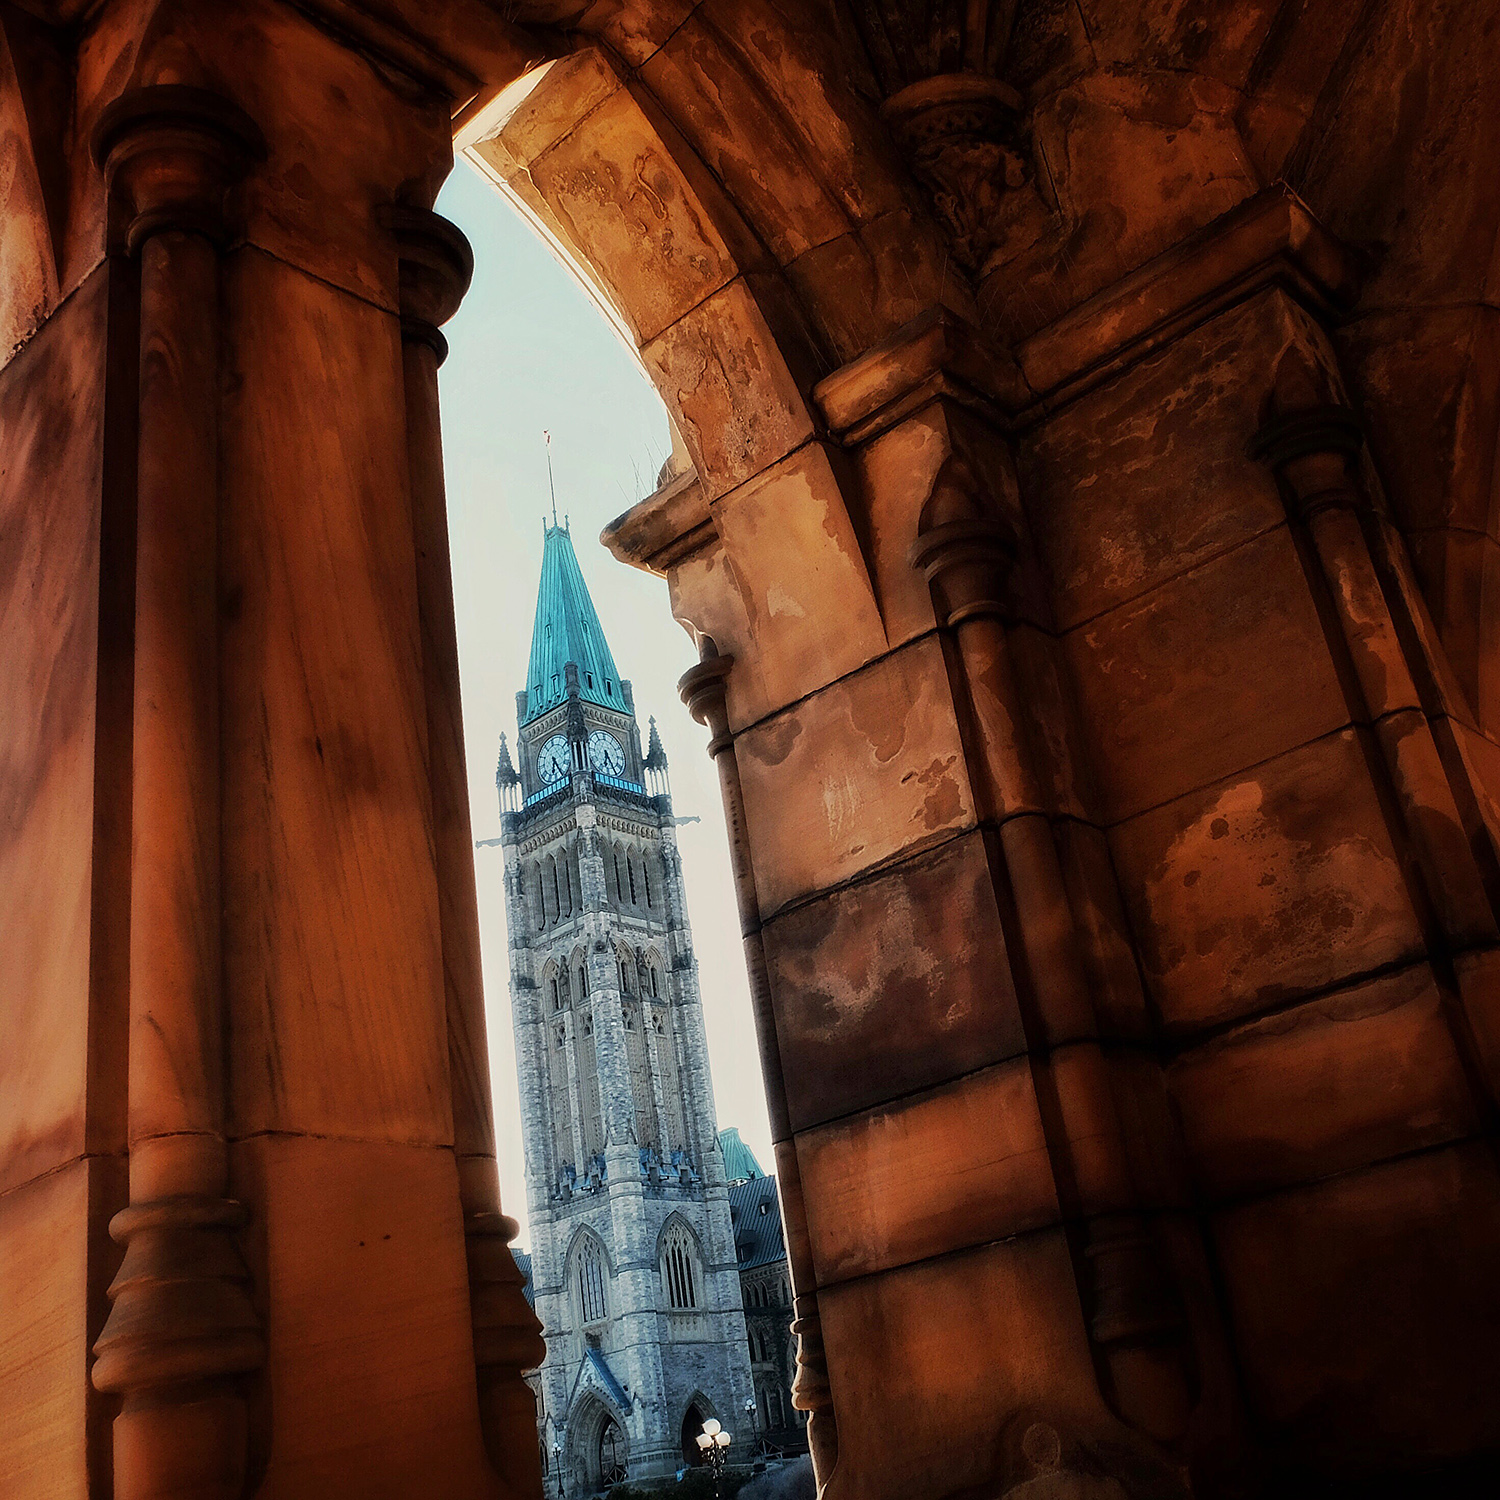 loveOttawa_PeaceTower2_web.jpg